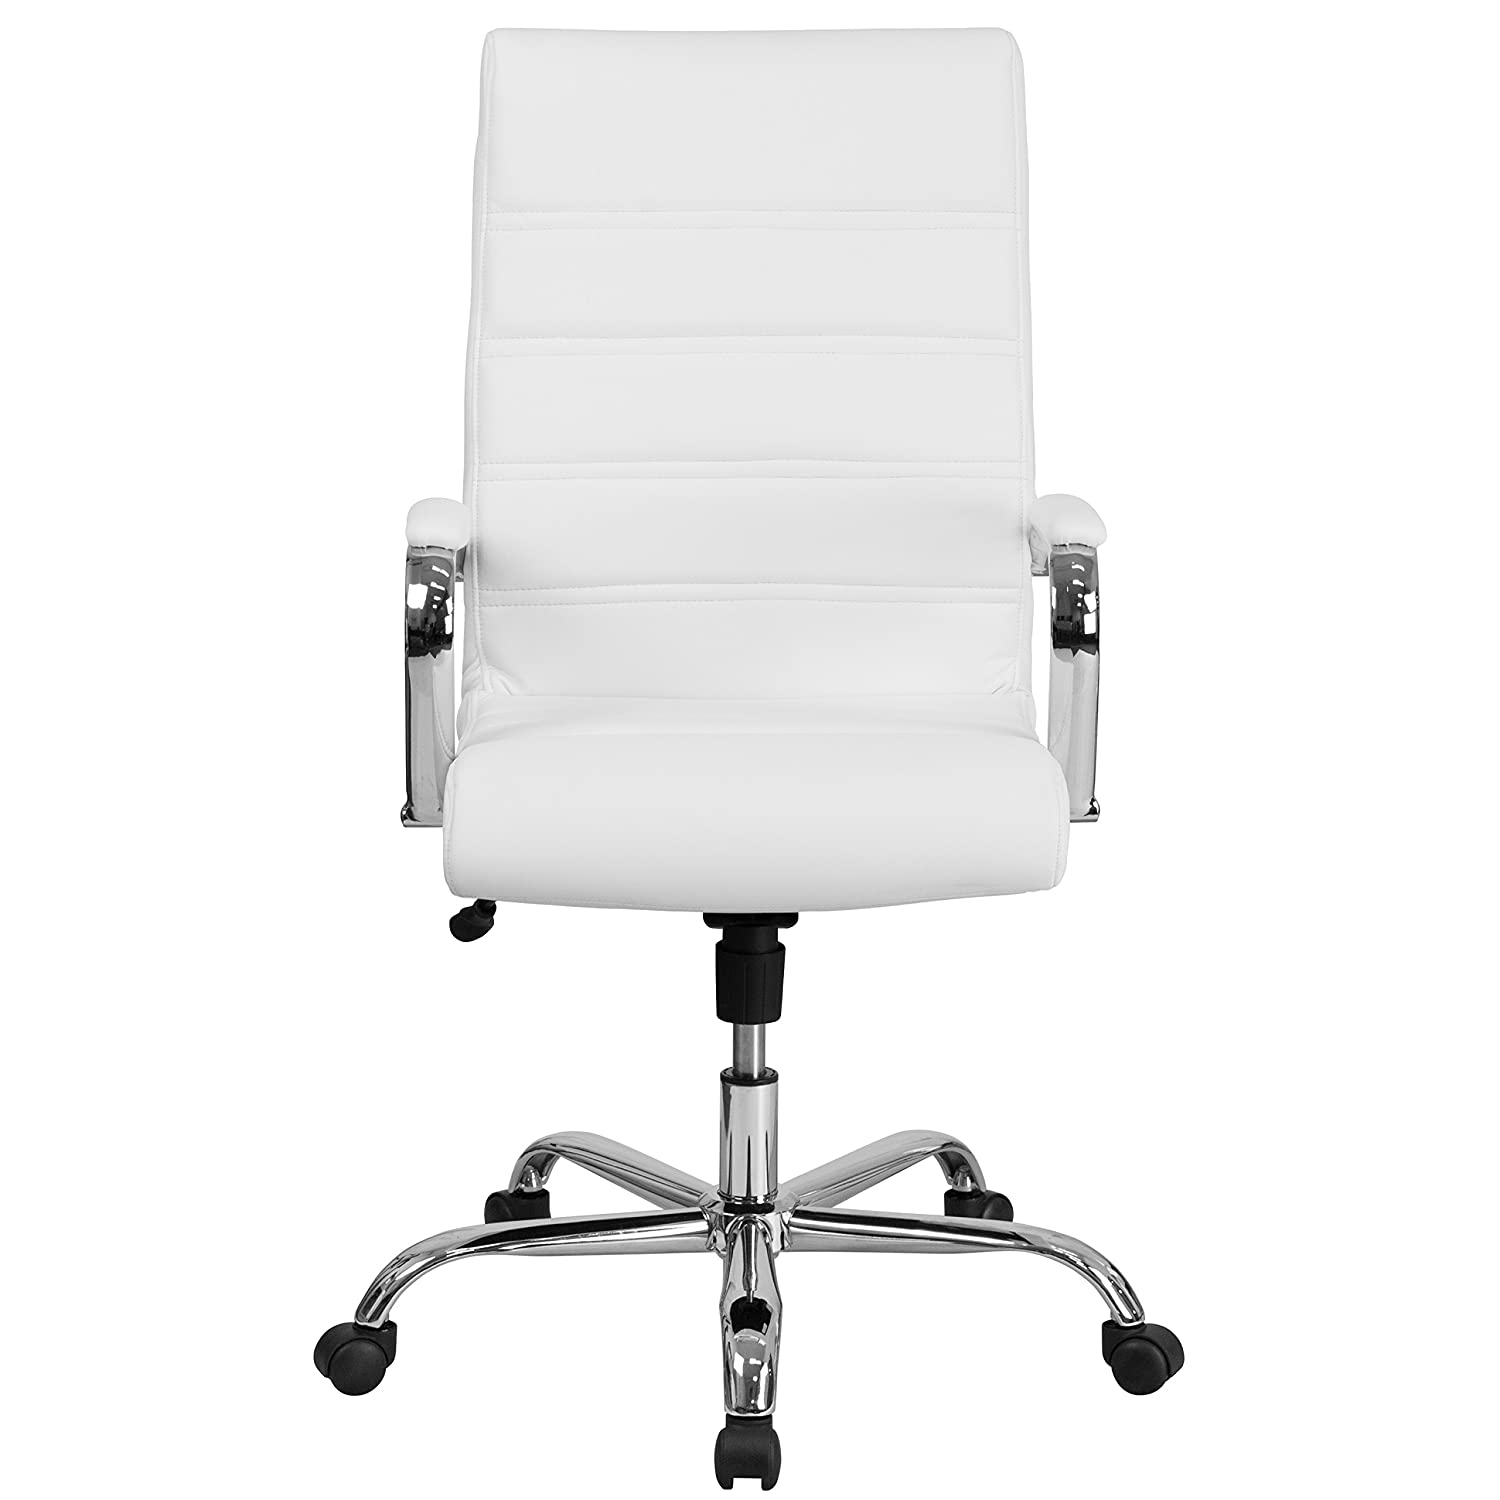 Flash Furniture High Back Office Chair | White LeatherSoft Office Chair  with Wheels and Arms - GO-2286H-WH-GG